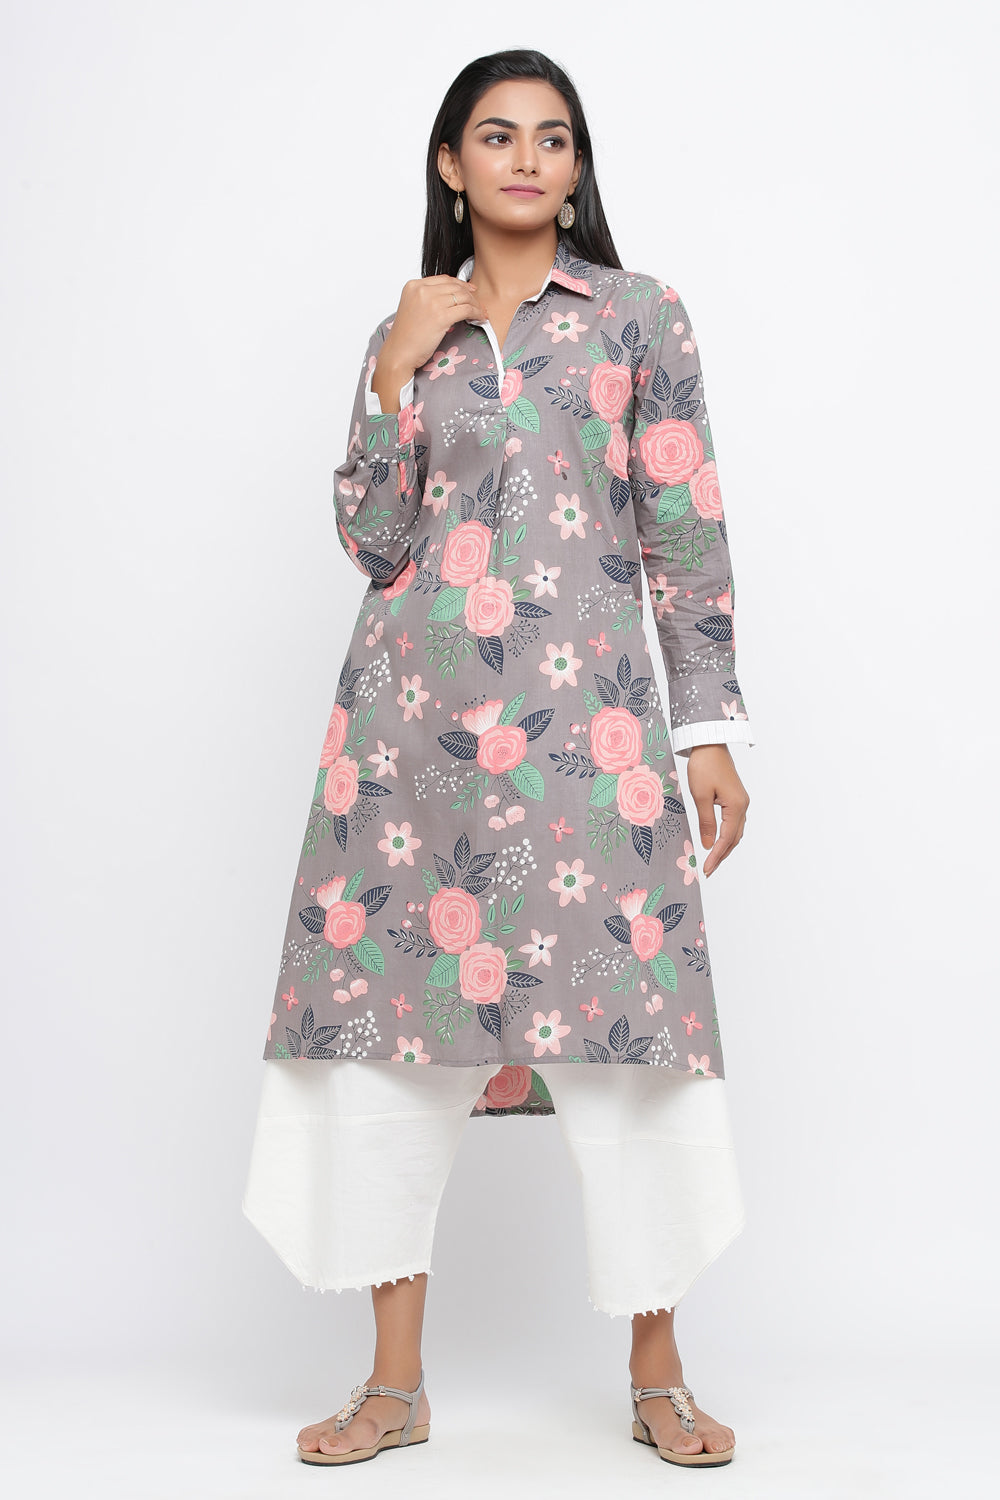 GREY COLOUR COTTON FLORAL PRINTED DRESS